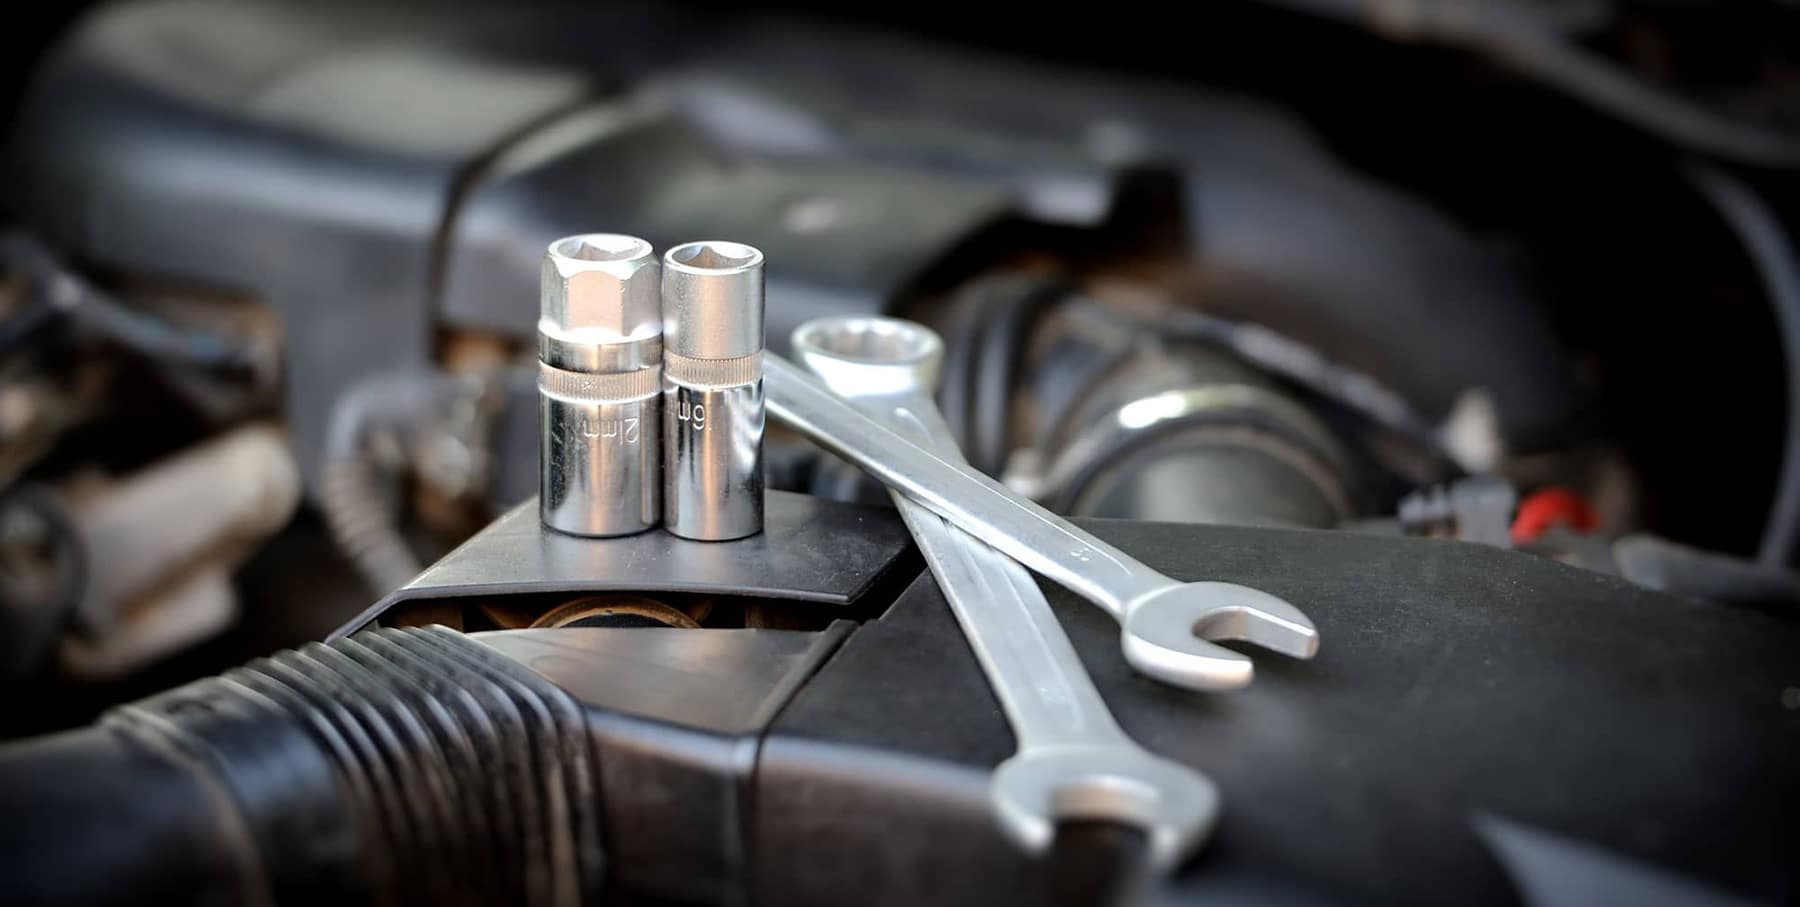 Tools on an engine